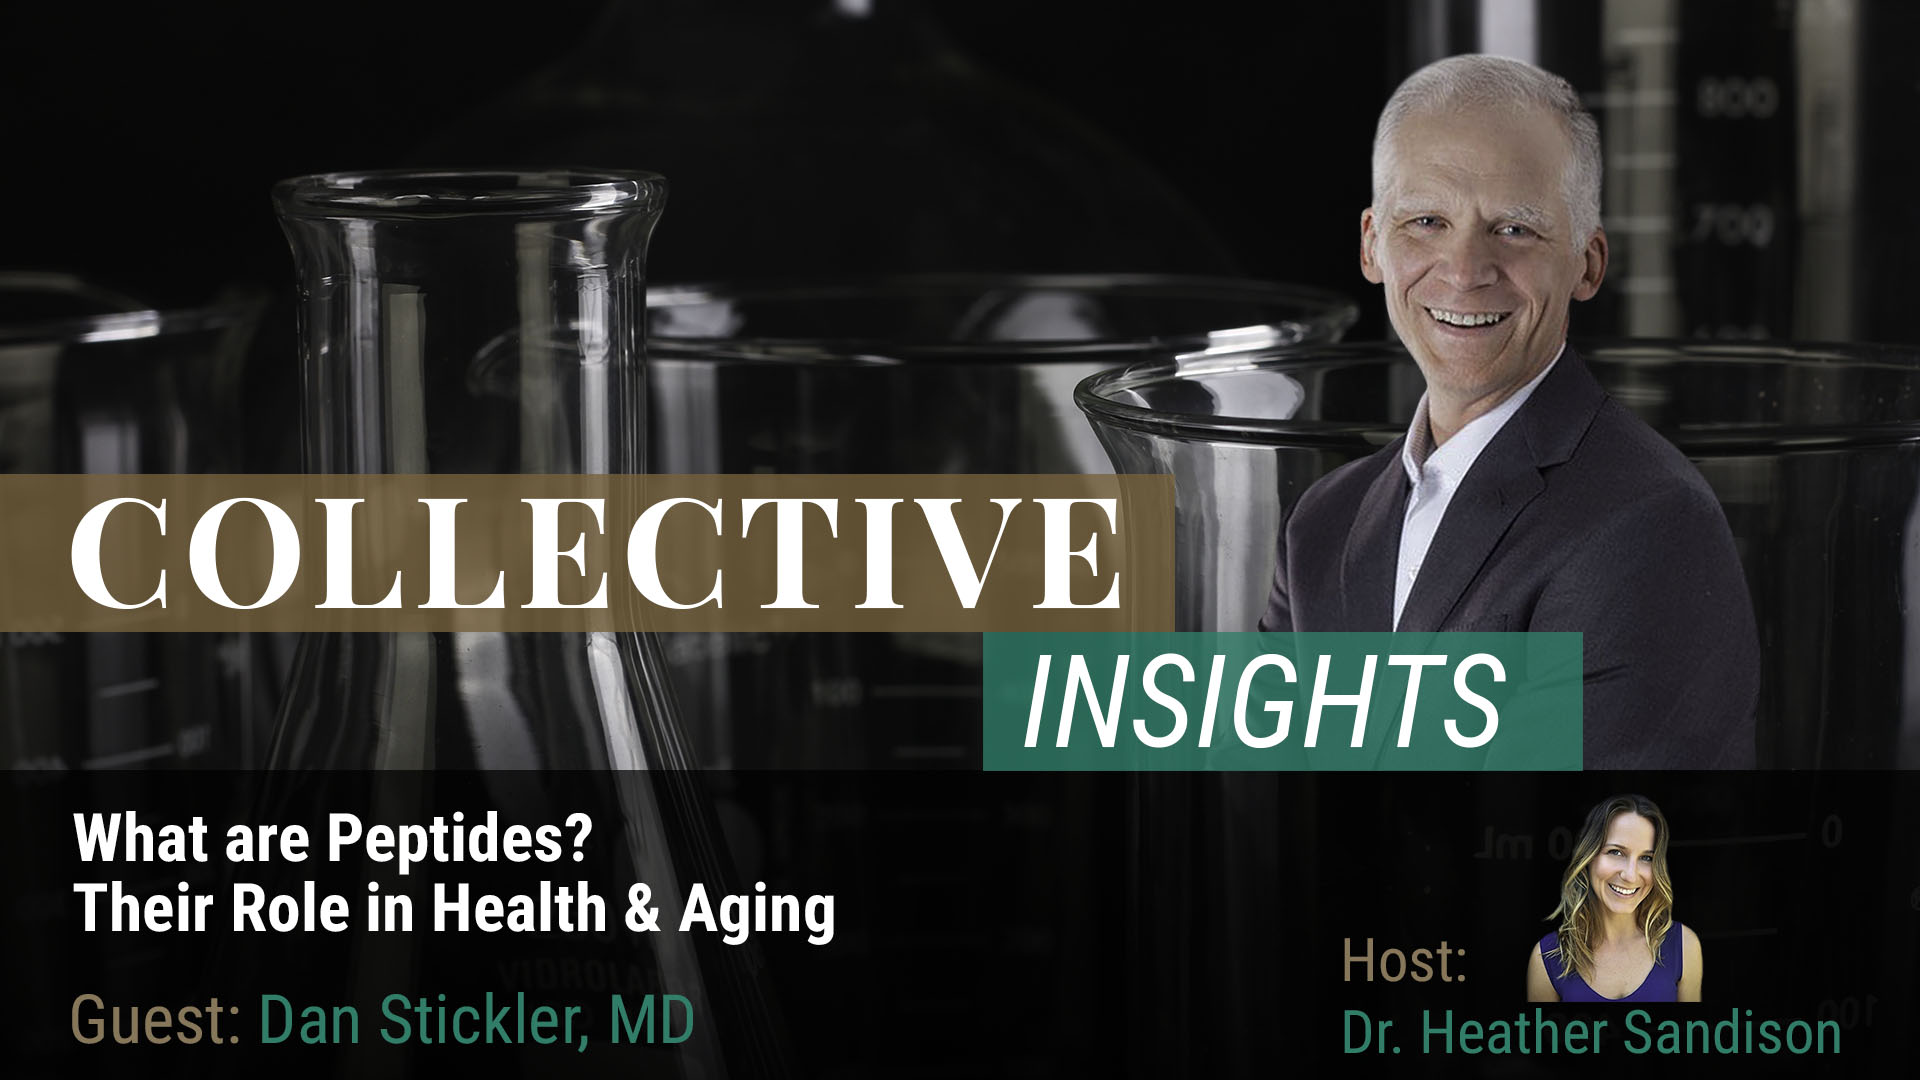 What are Peptides? Their Role in Health & Aging